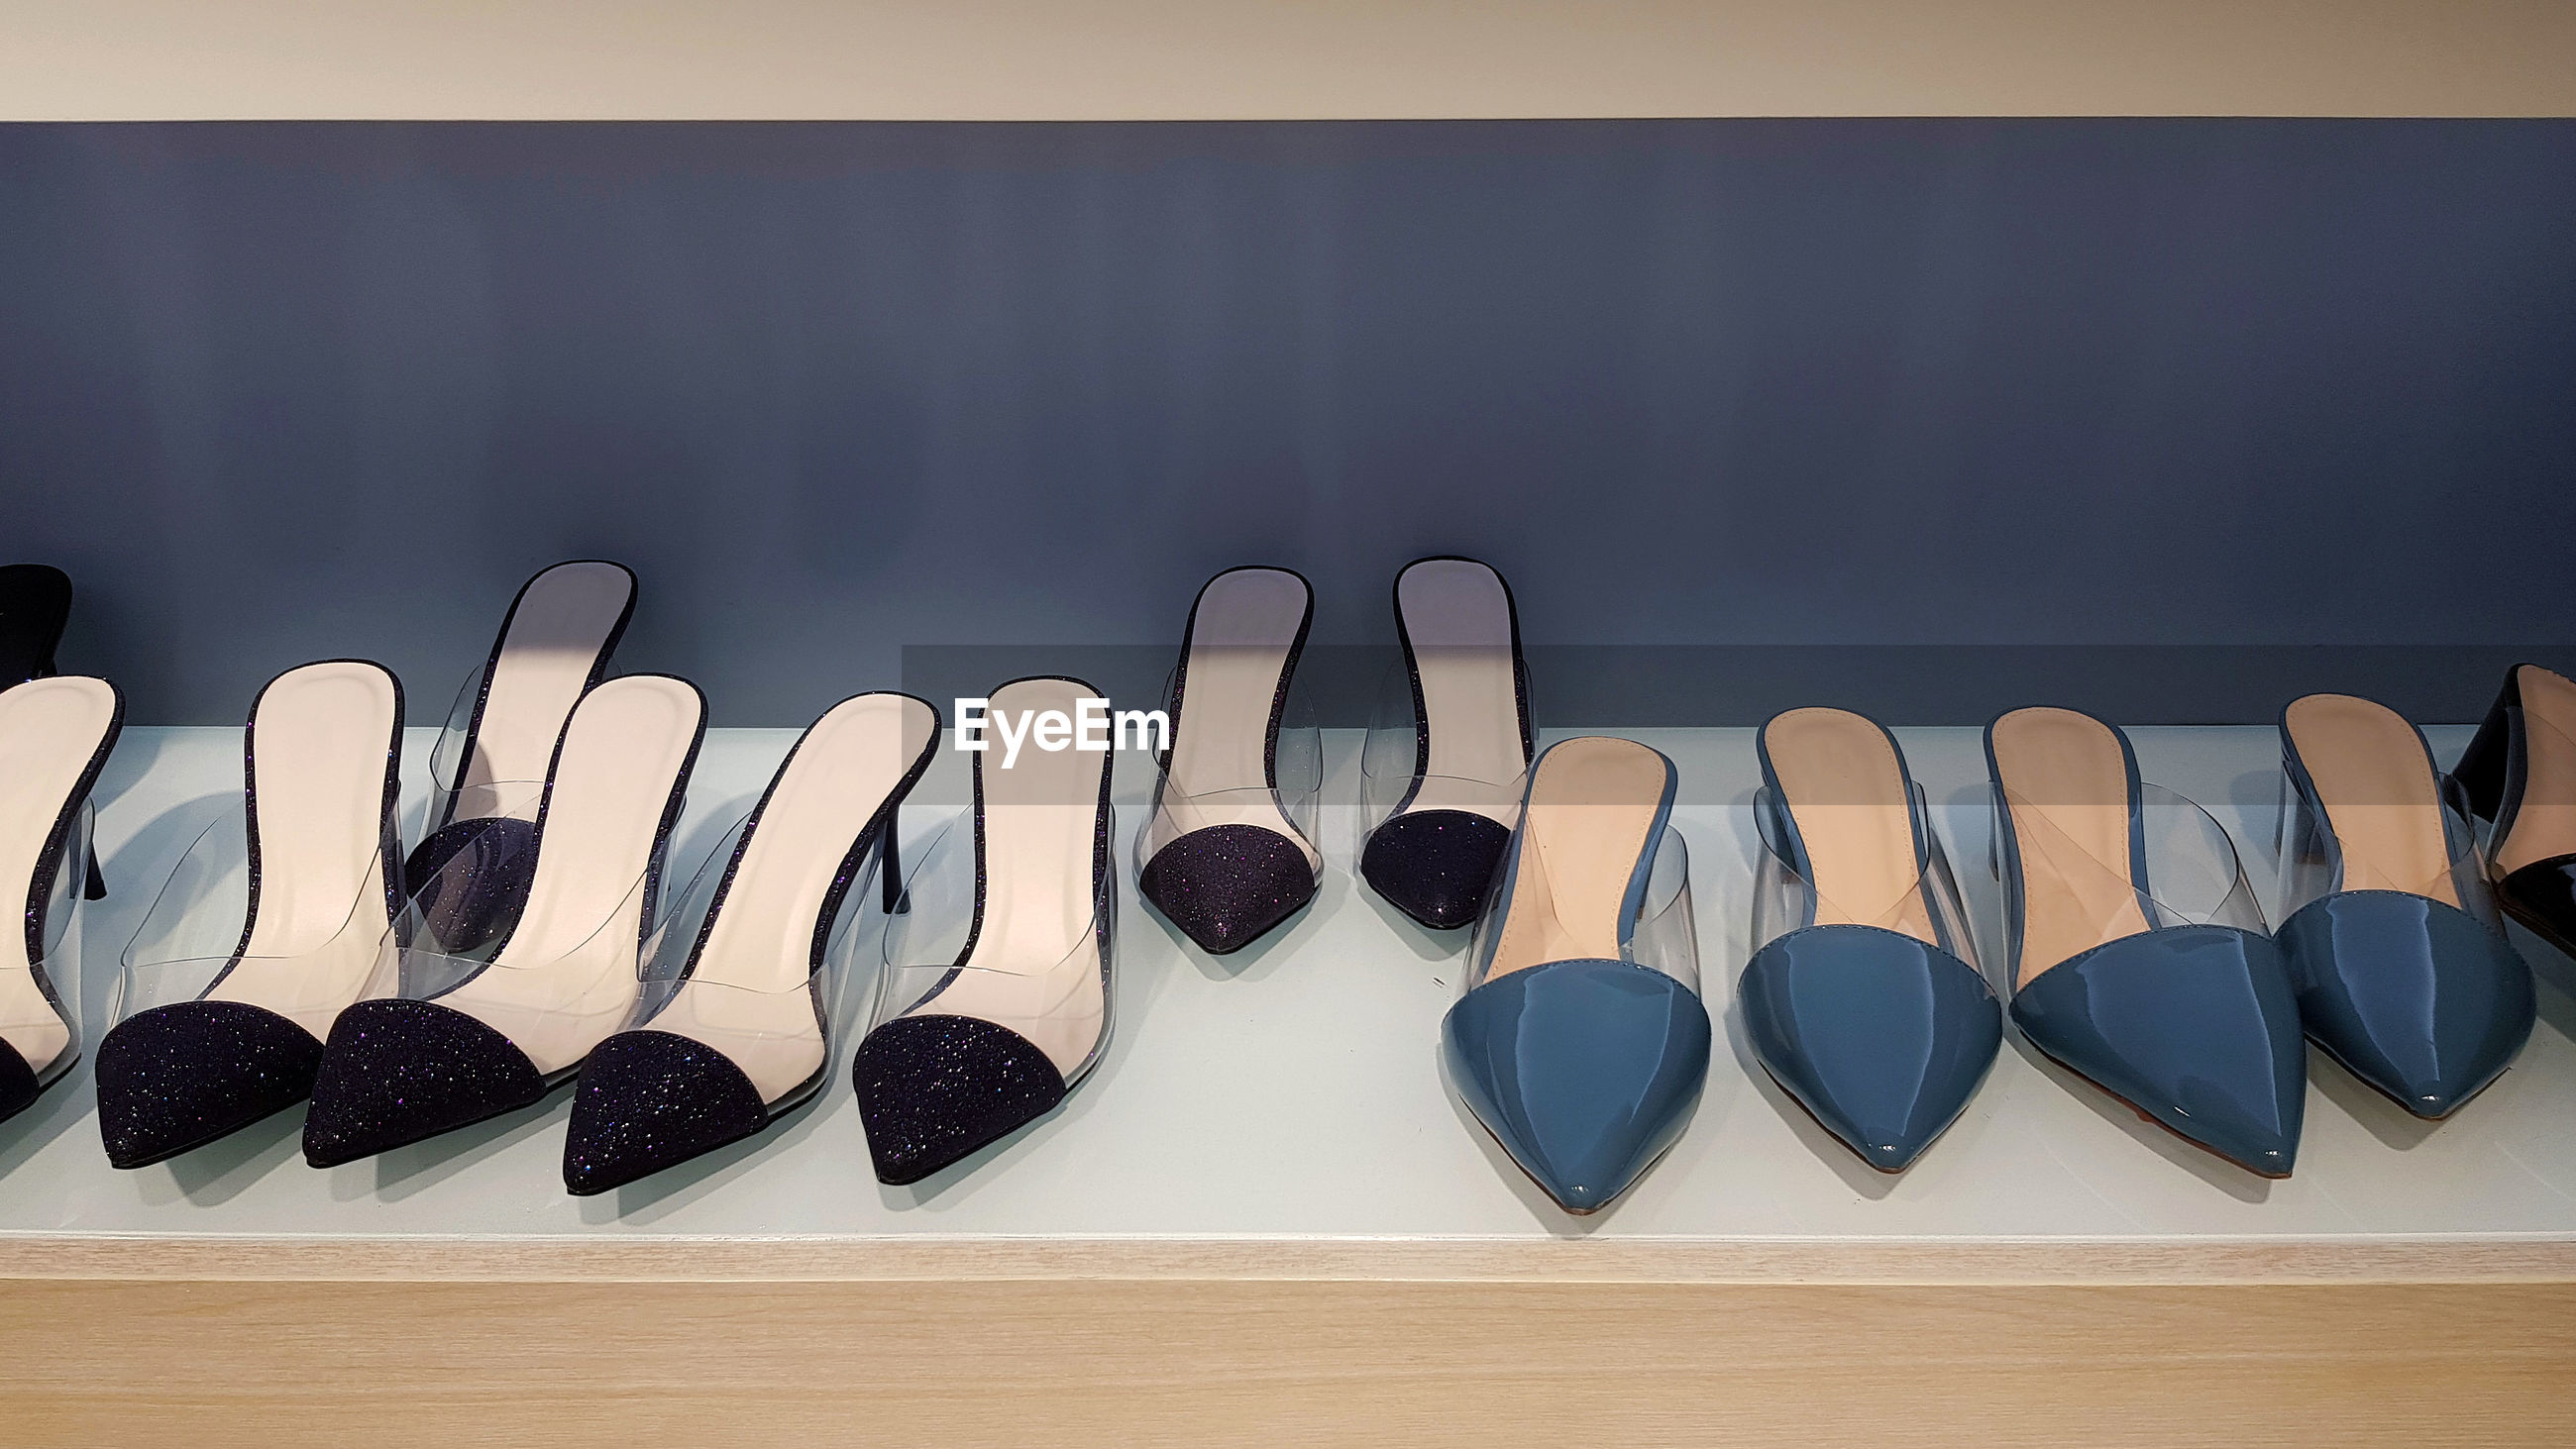 CLOSE-UP OF SHOES ARRANGED ON TABLE